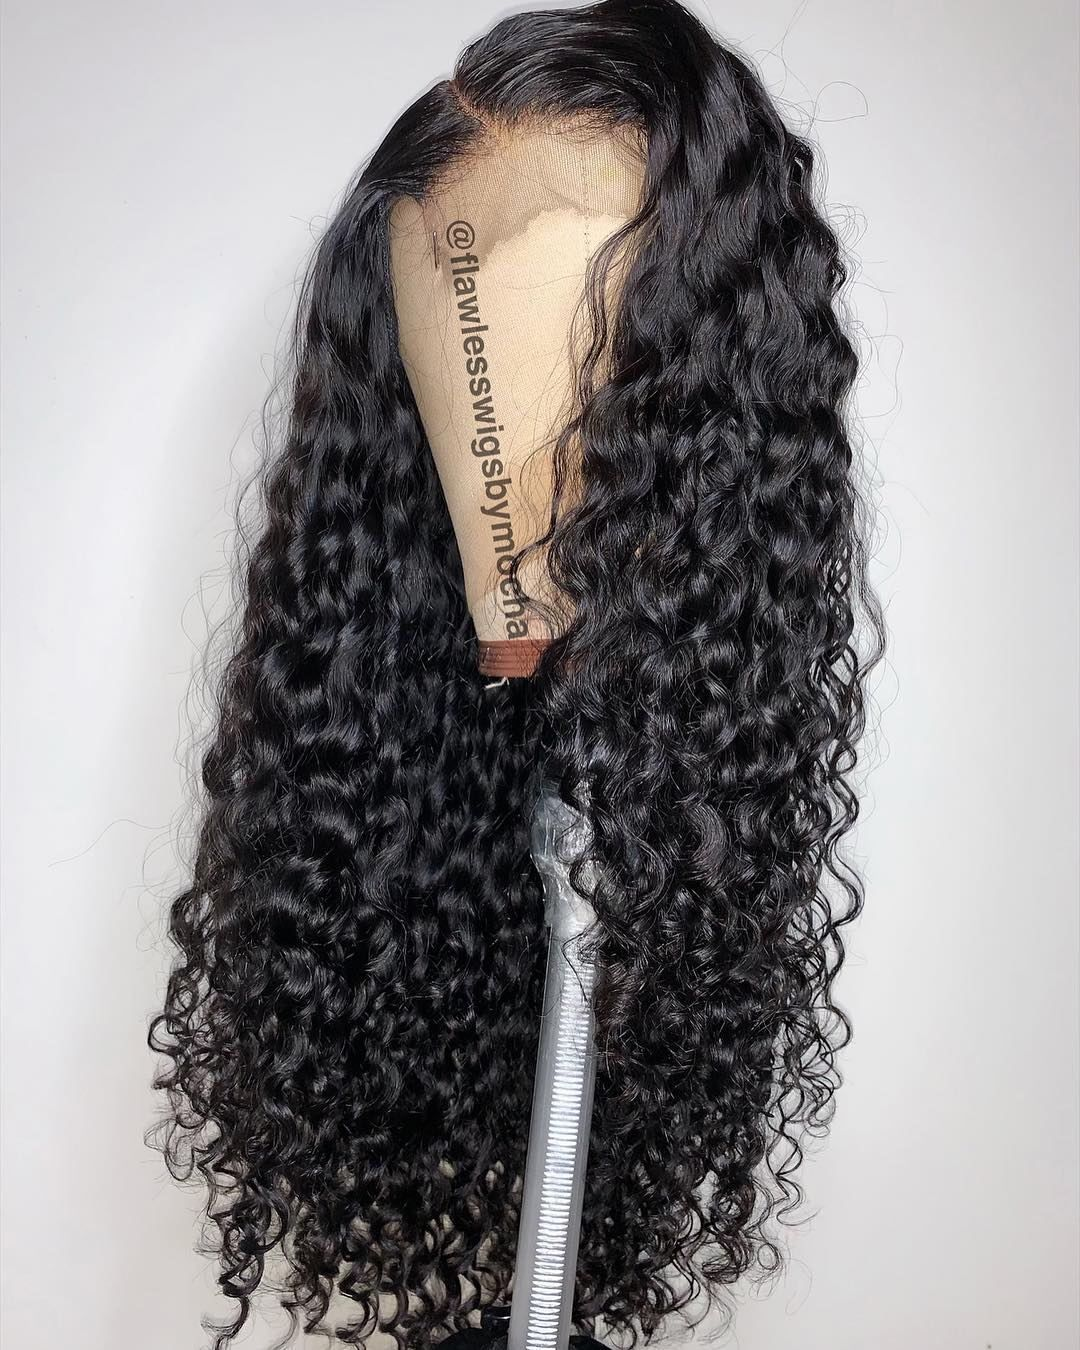 Curly Wigs Lace Front Curly Hair Black Hair Short Curly Hair 10 Inch Body Wave Weave 100 Human Hair Lace Front Wigs Cuticle Remy Hair